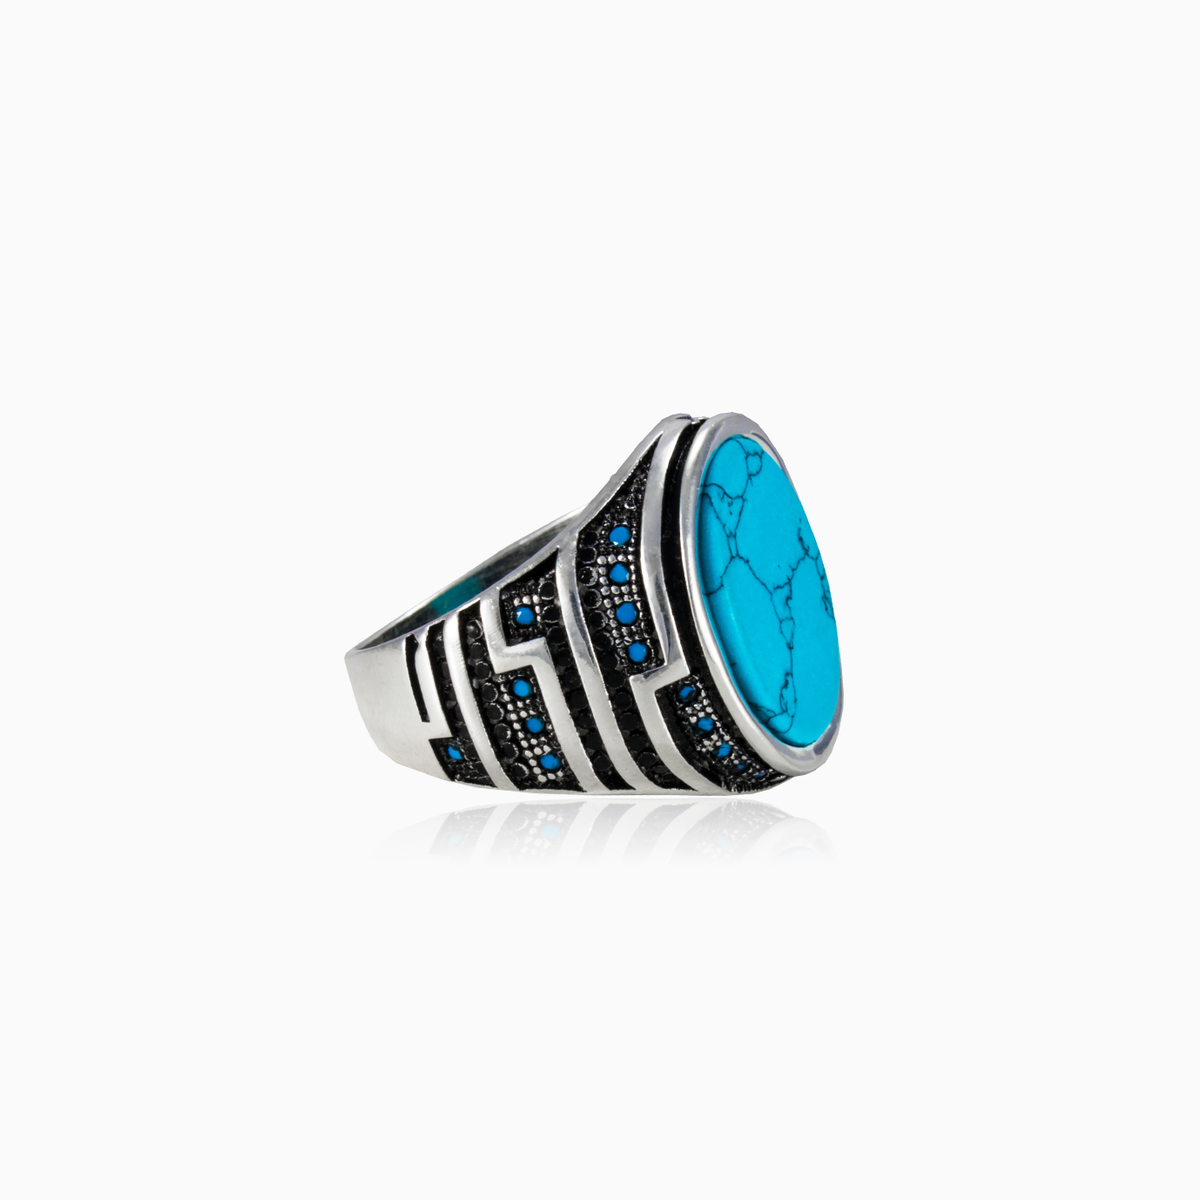 Silver plated and turquoise O 12-54 12 Ring Size 7 14